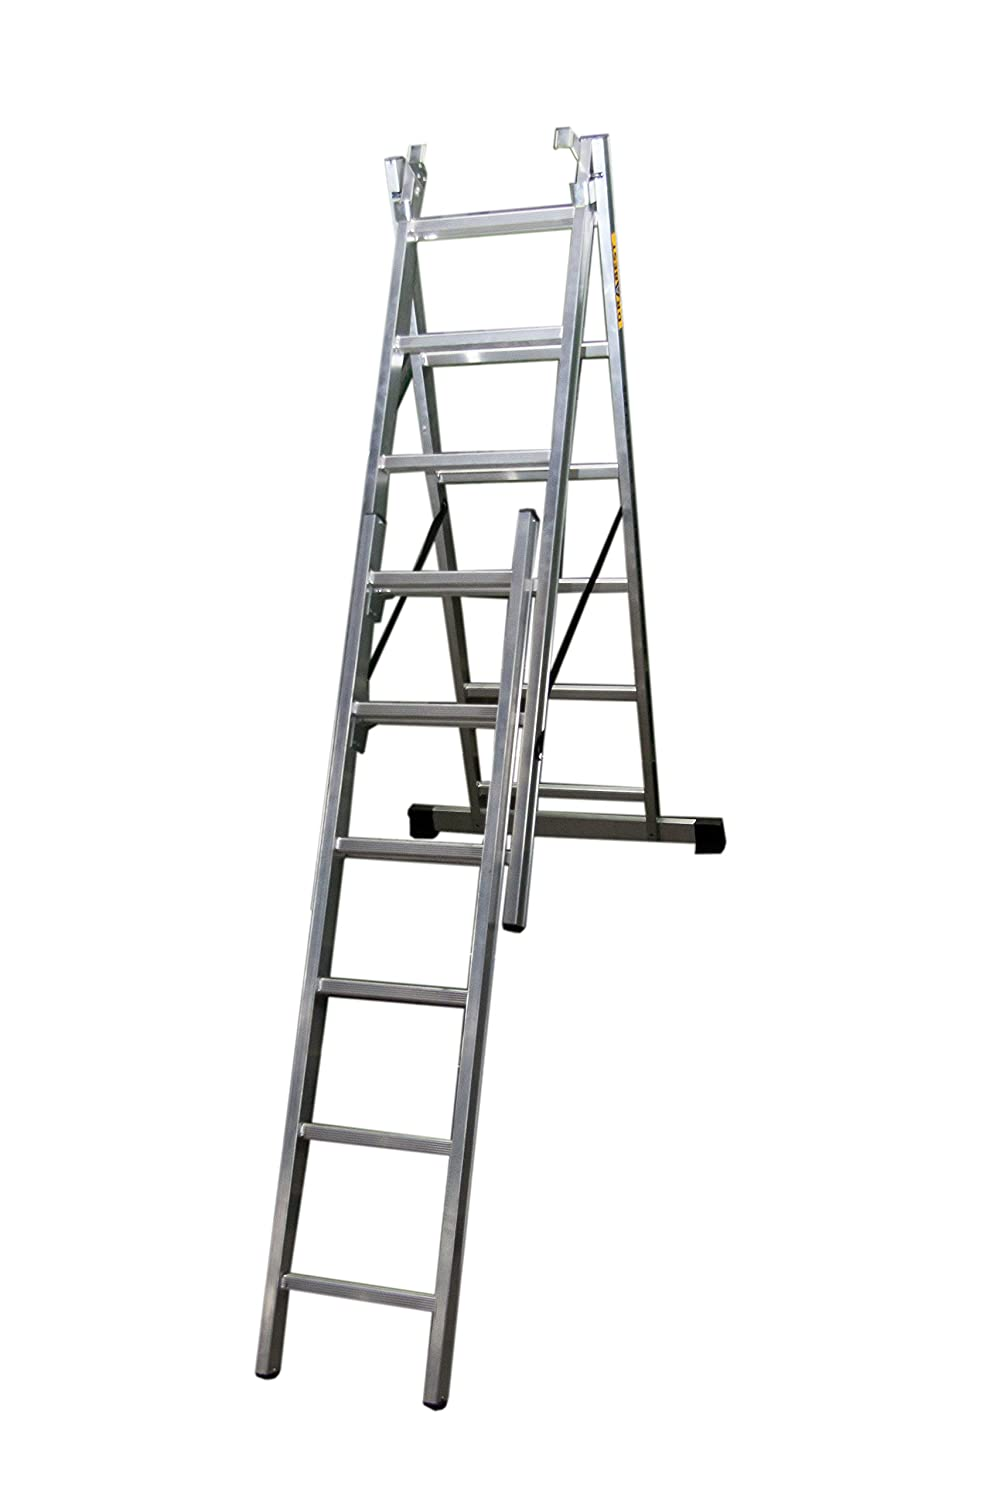 Drabest DW33X11 4 in 1 Aluminium Combination Reform Ladder 7.2m